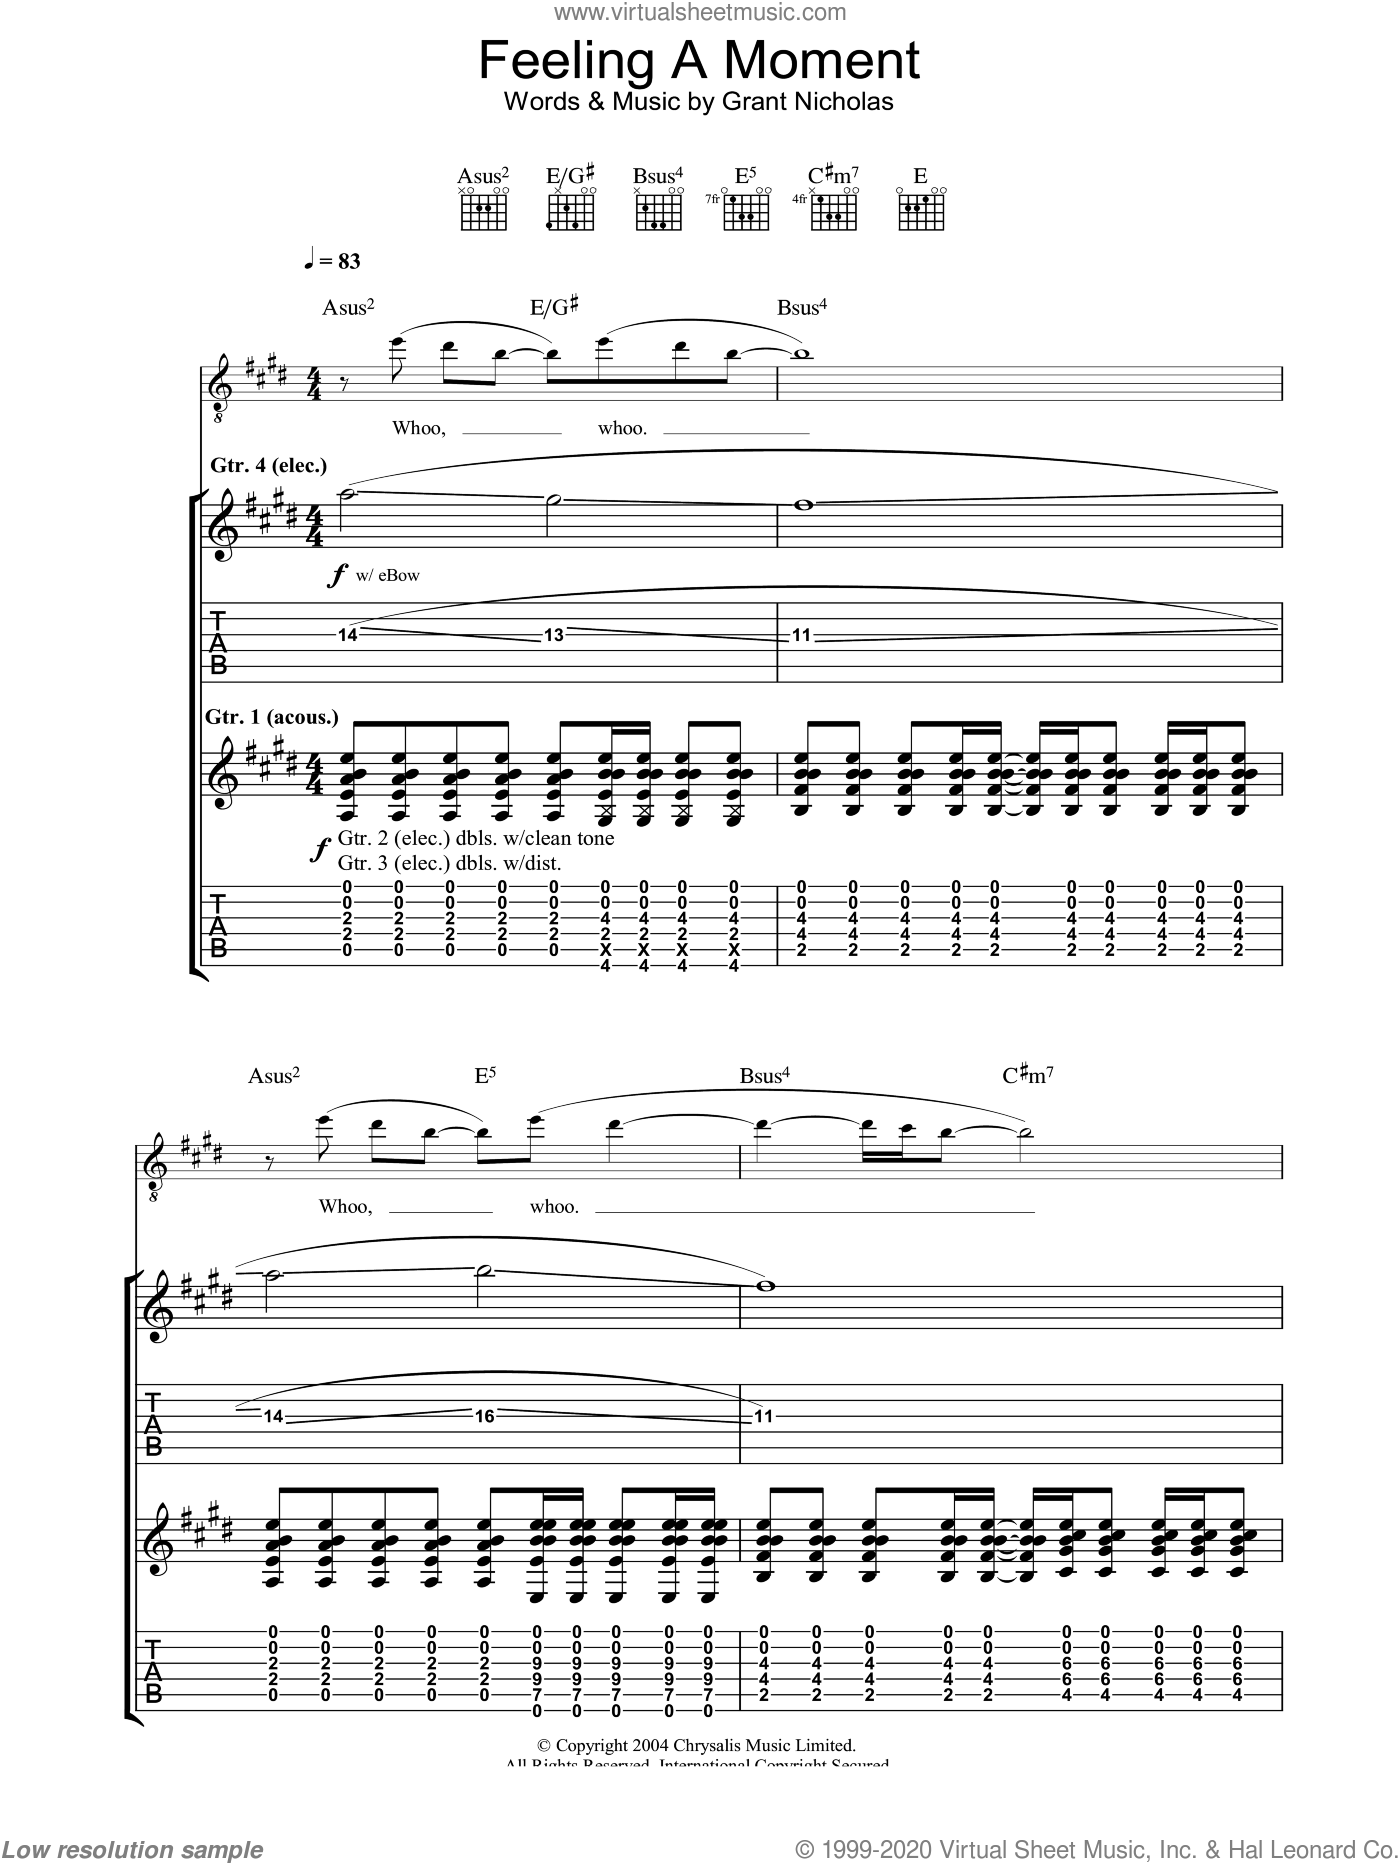 Feeling A Moment sheet music for guitar (tablature) by Grant Nicholas